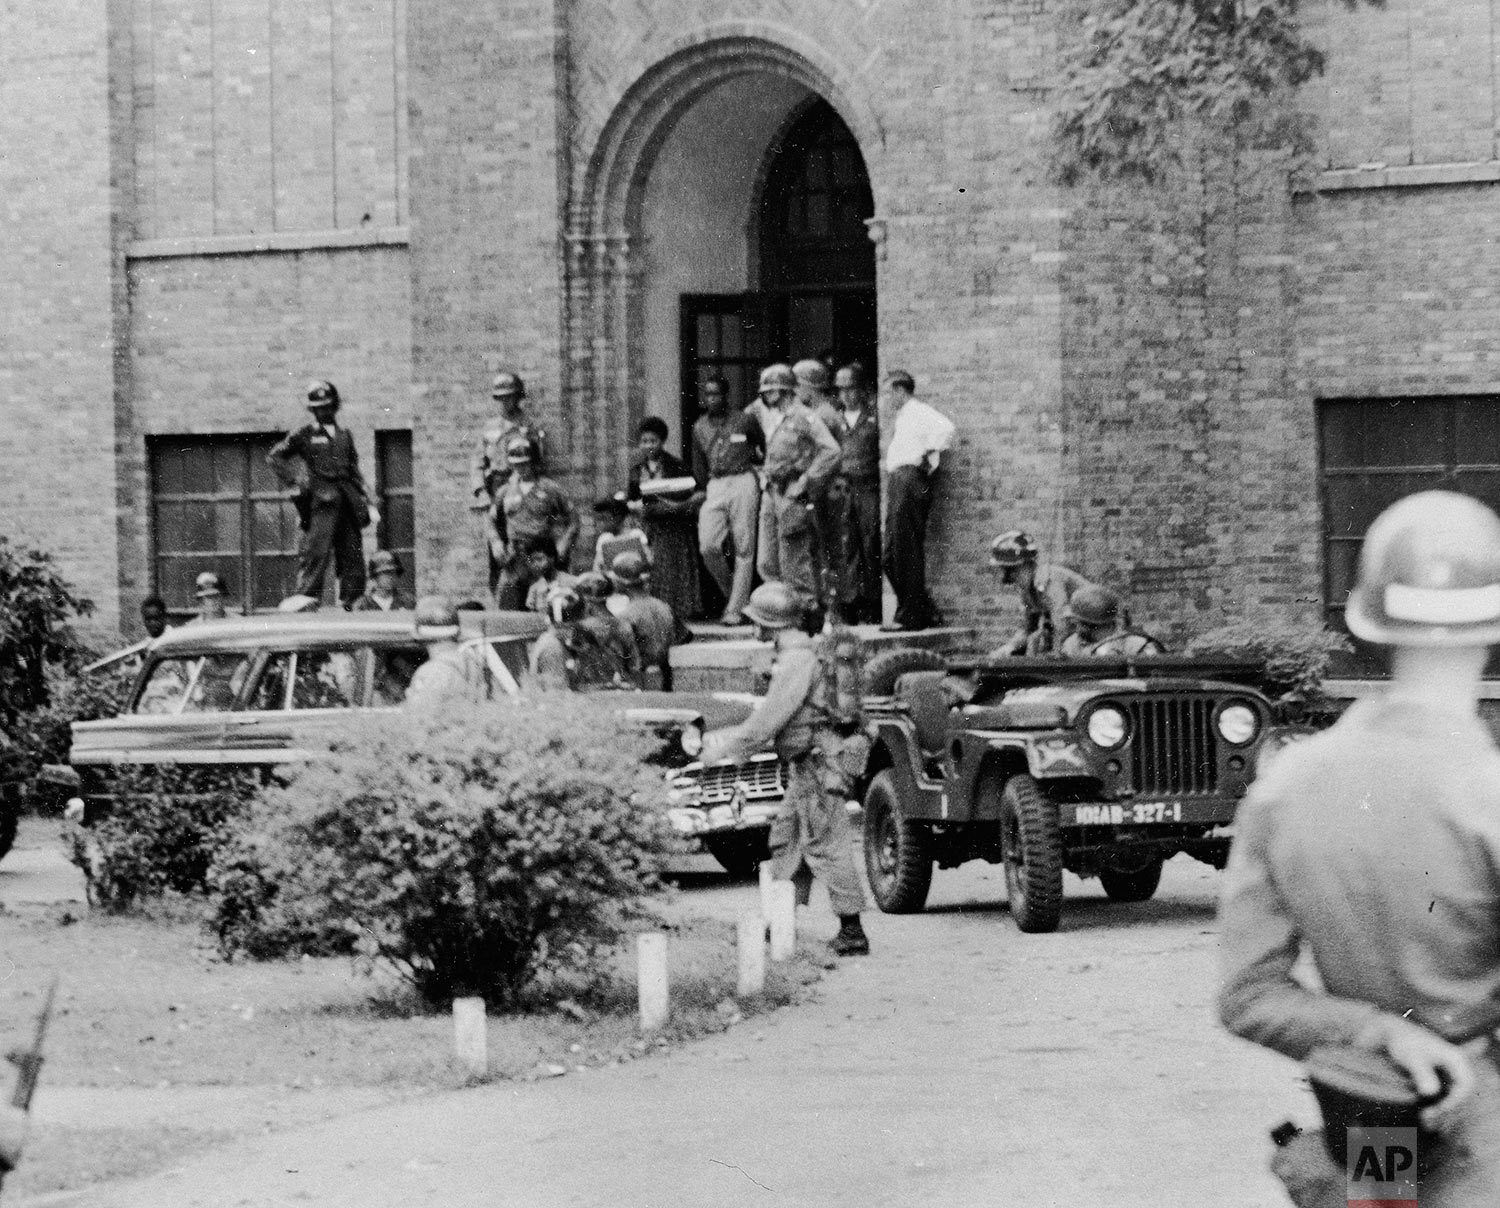 Nine black students leave Central High School in Little Rock, Ark., after classes, Sept. 25, 1957. They are being escorted from a side door by troops of the 101st Airborne Division. (AP Photo)